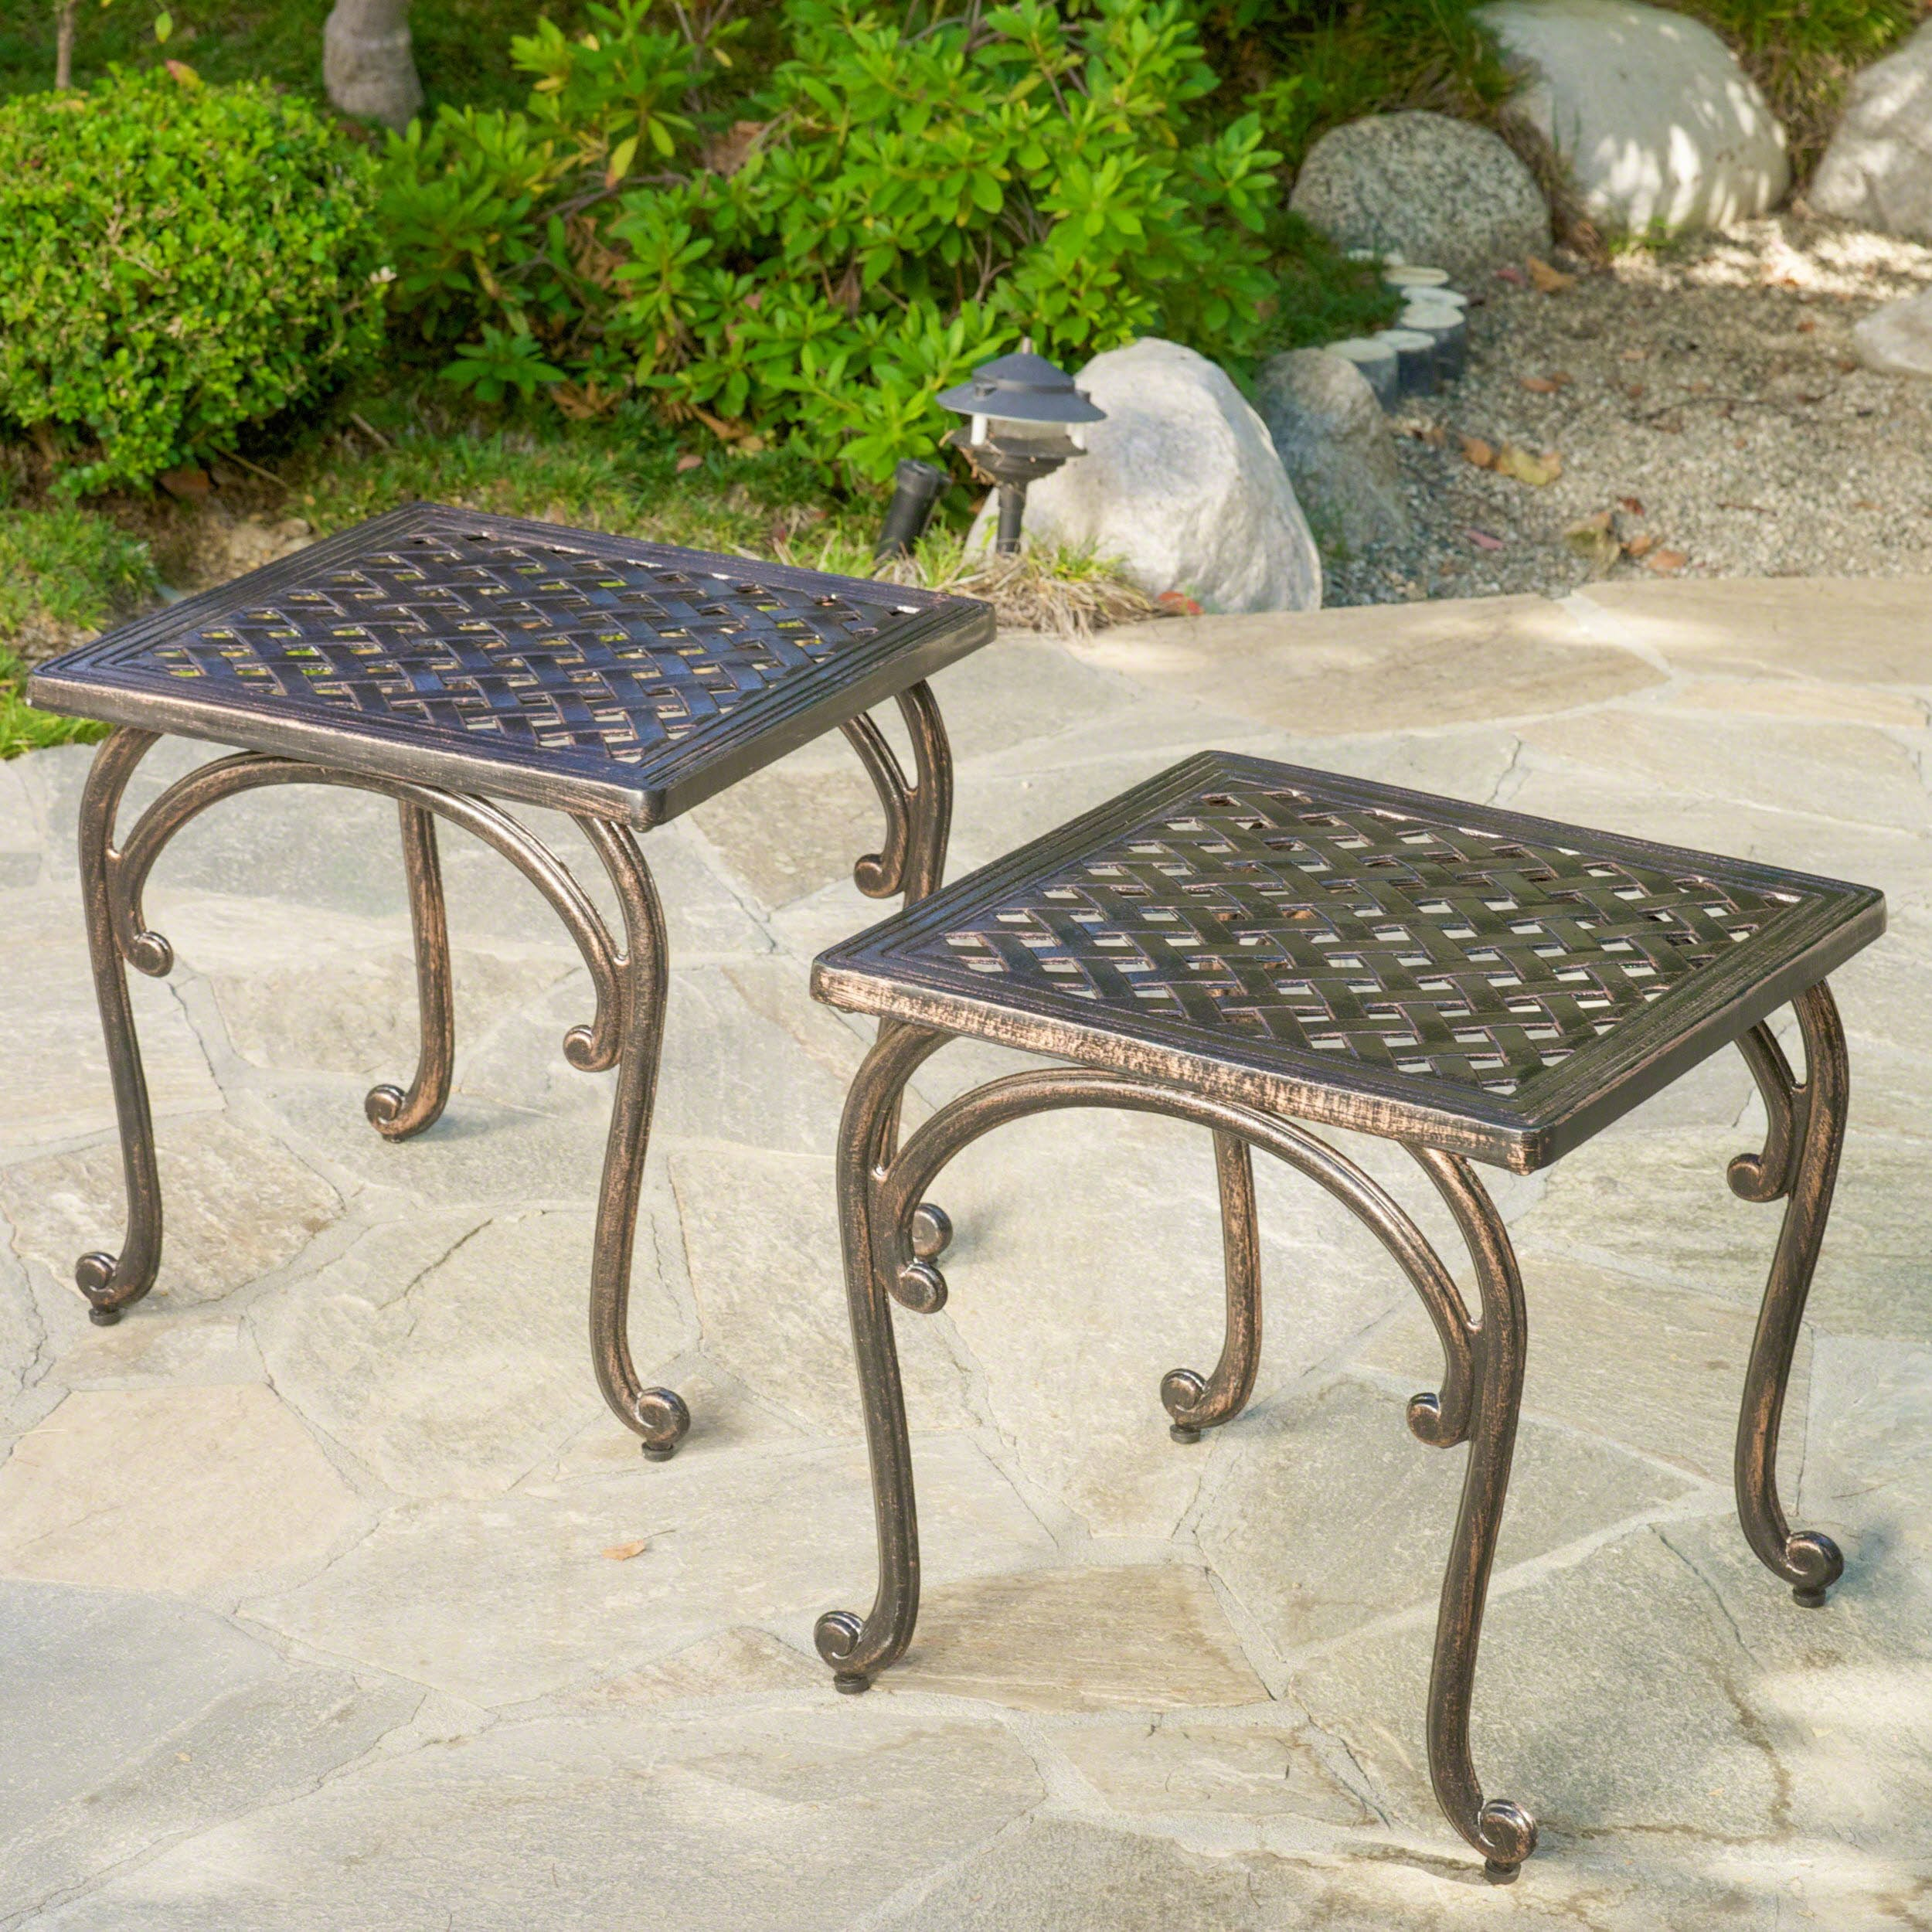 best rated outdoor side tables helpful customer reviews unique accent hyde cast aluminium table set product entryway bench ikea bedroom furniture packages tall hairpin legs vinyl